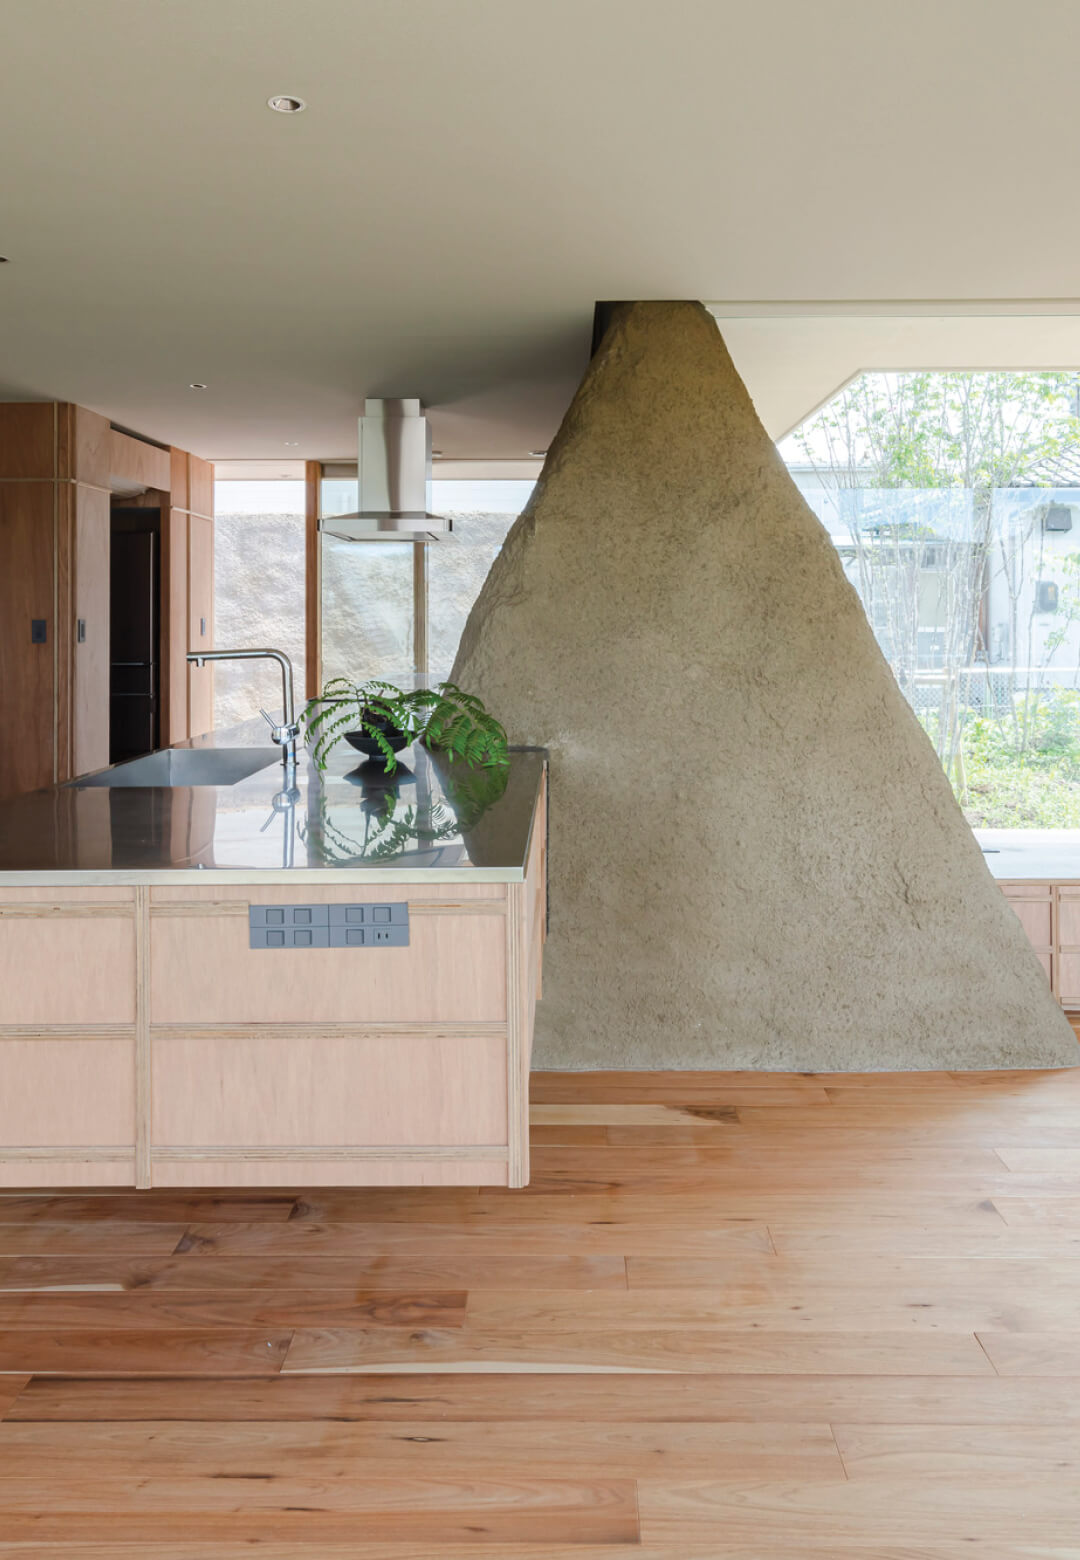 Soil house by ADX in Minamisōma City, Fukushima Prefecture is an embodiment of the client's desire to be close to nature in his new residence | Soil House | ADX Japan | STIRworld